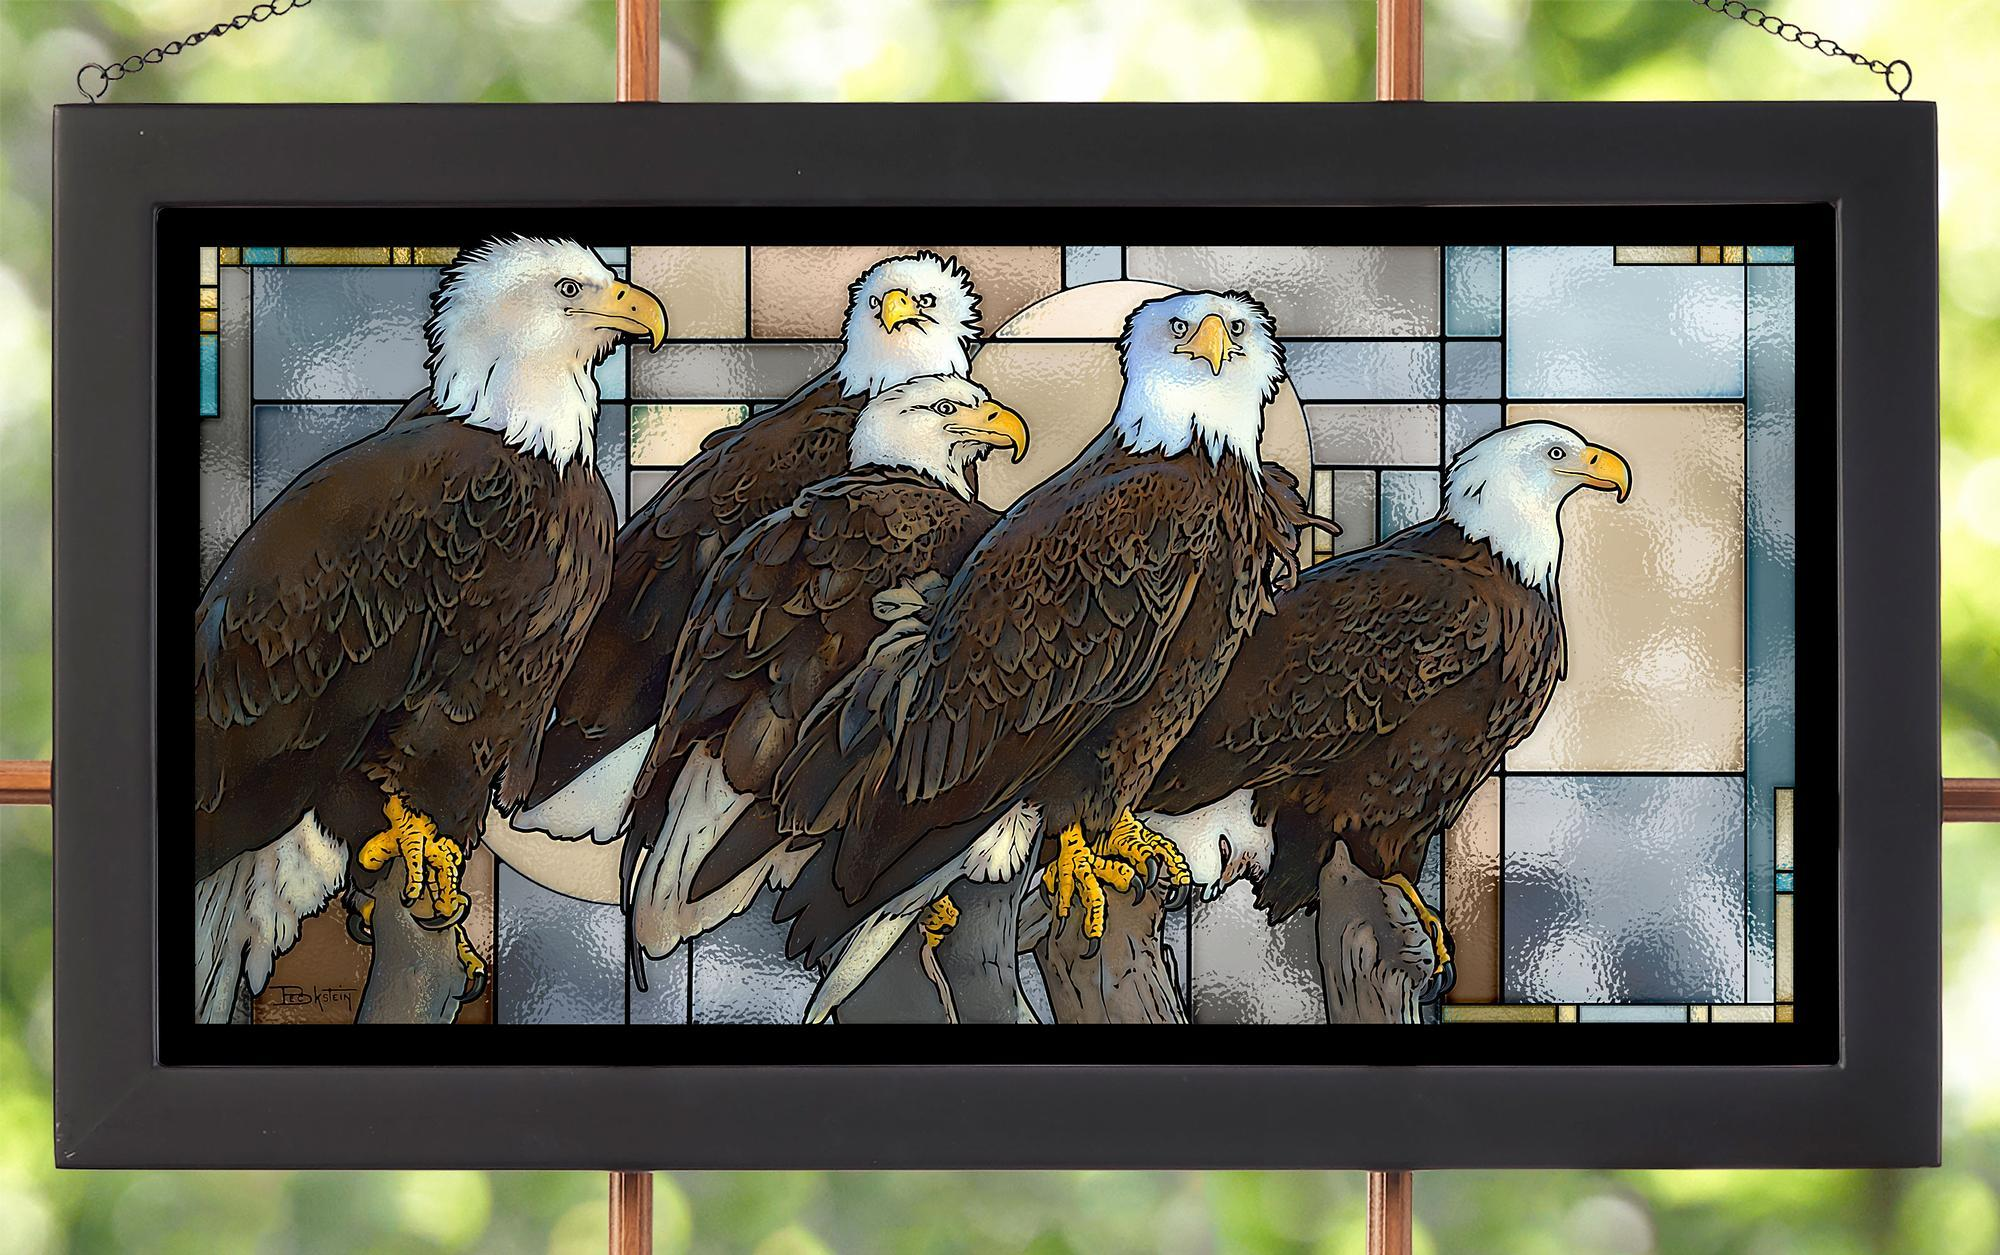 Board of Directors—Bald Eagles